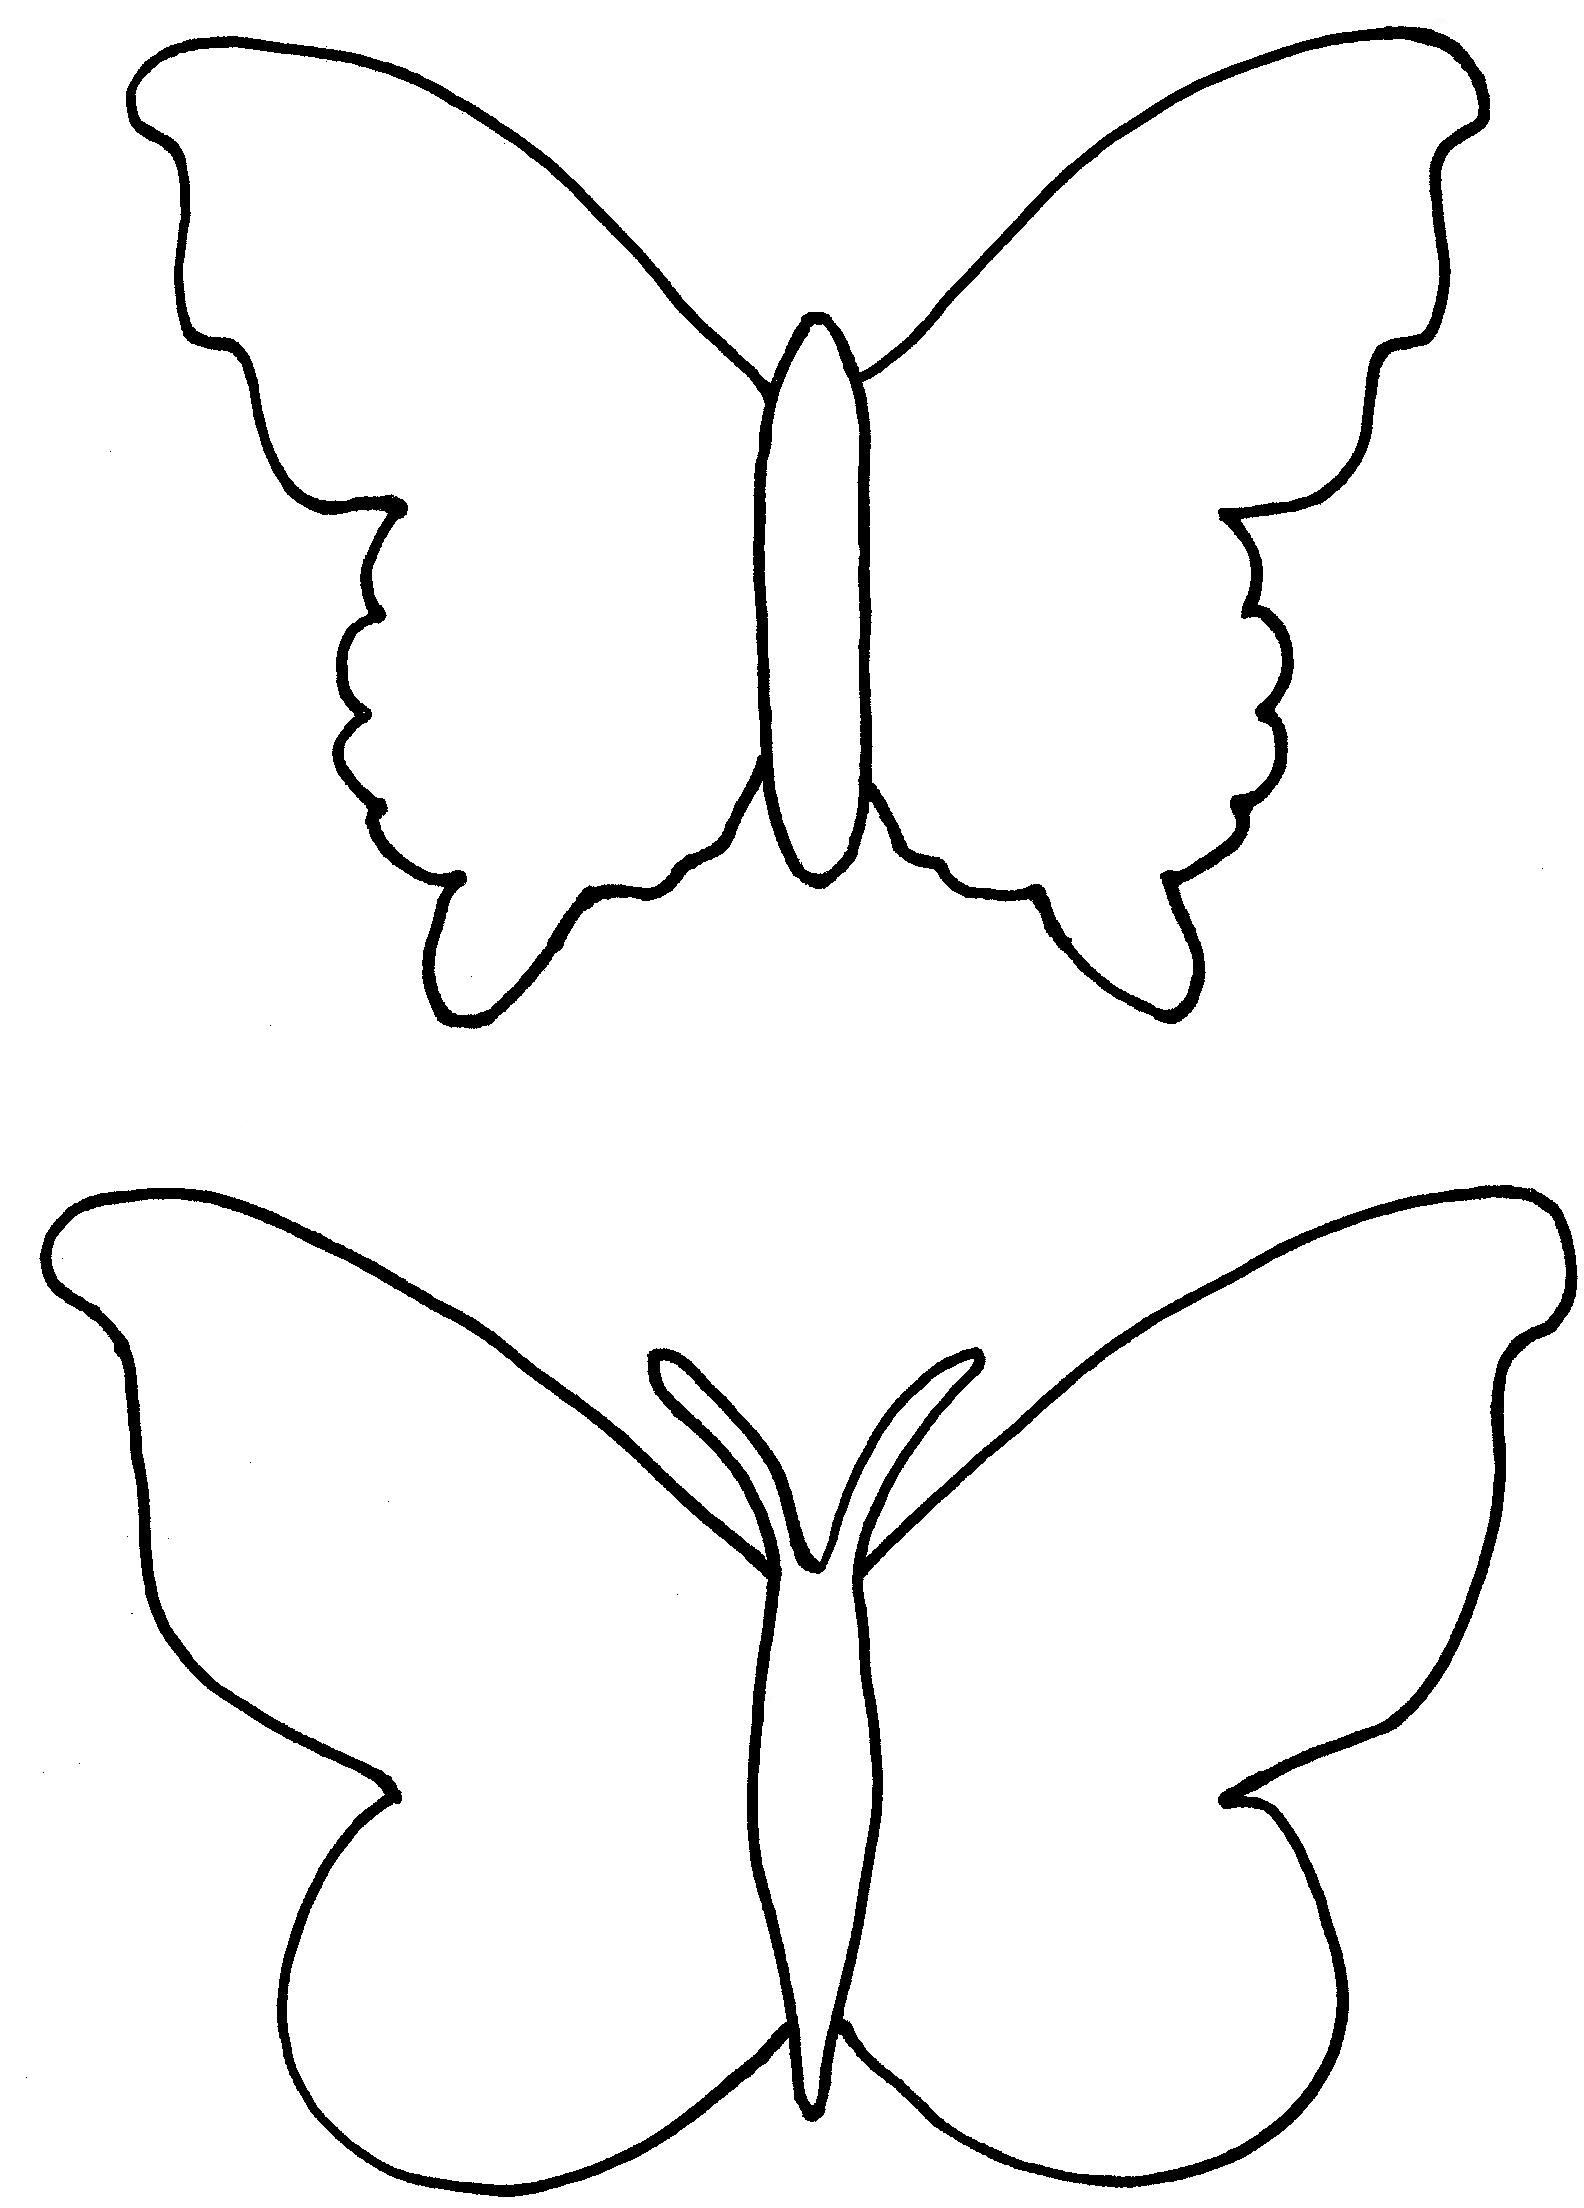 Nerdy image with regard to butterfly cut out printable